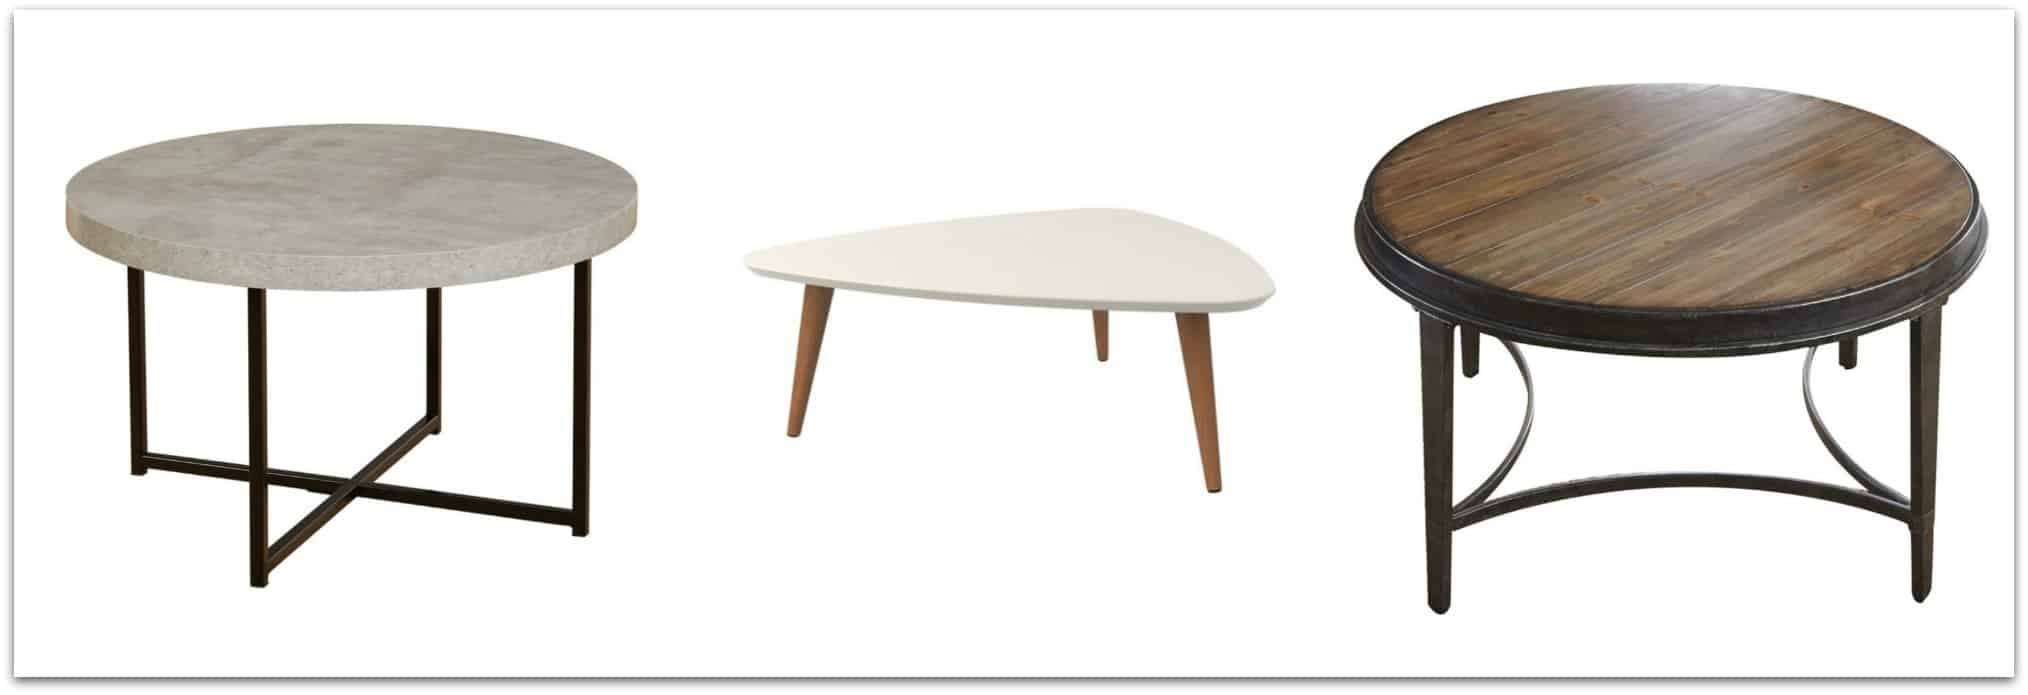 Coffee tables for a Transitional Style home